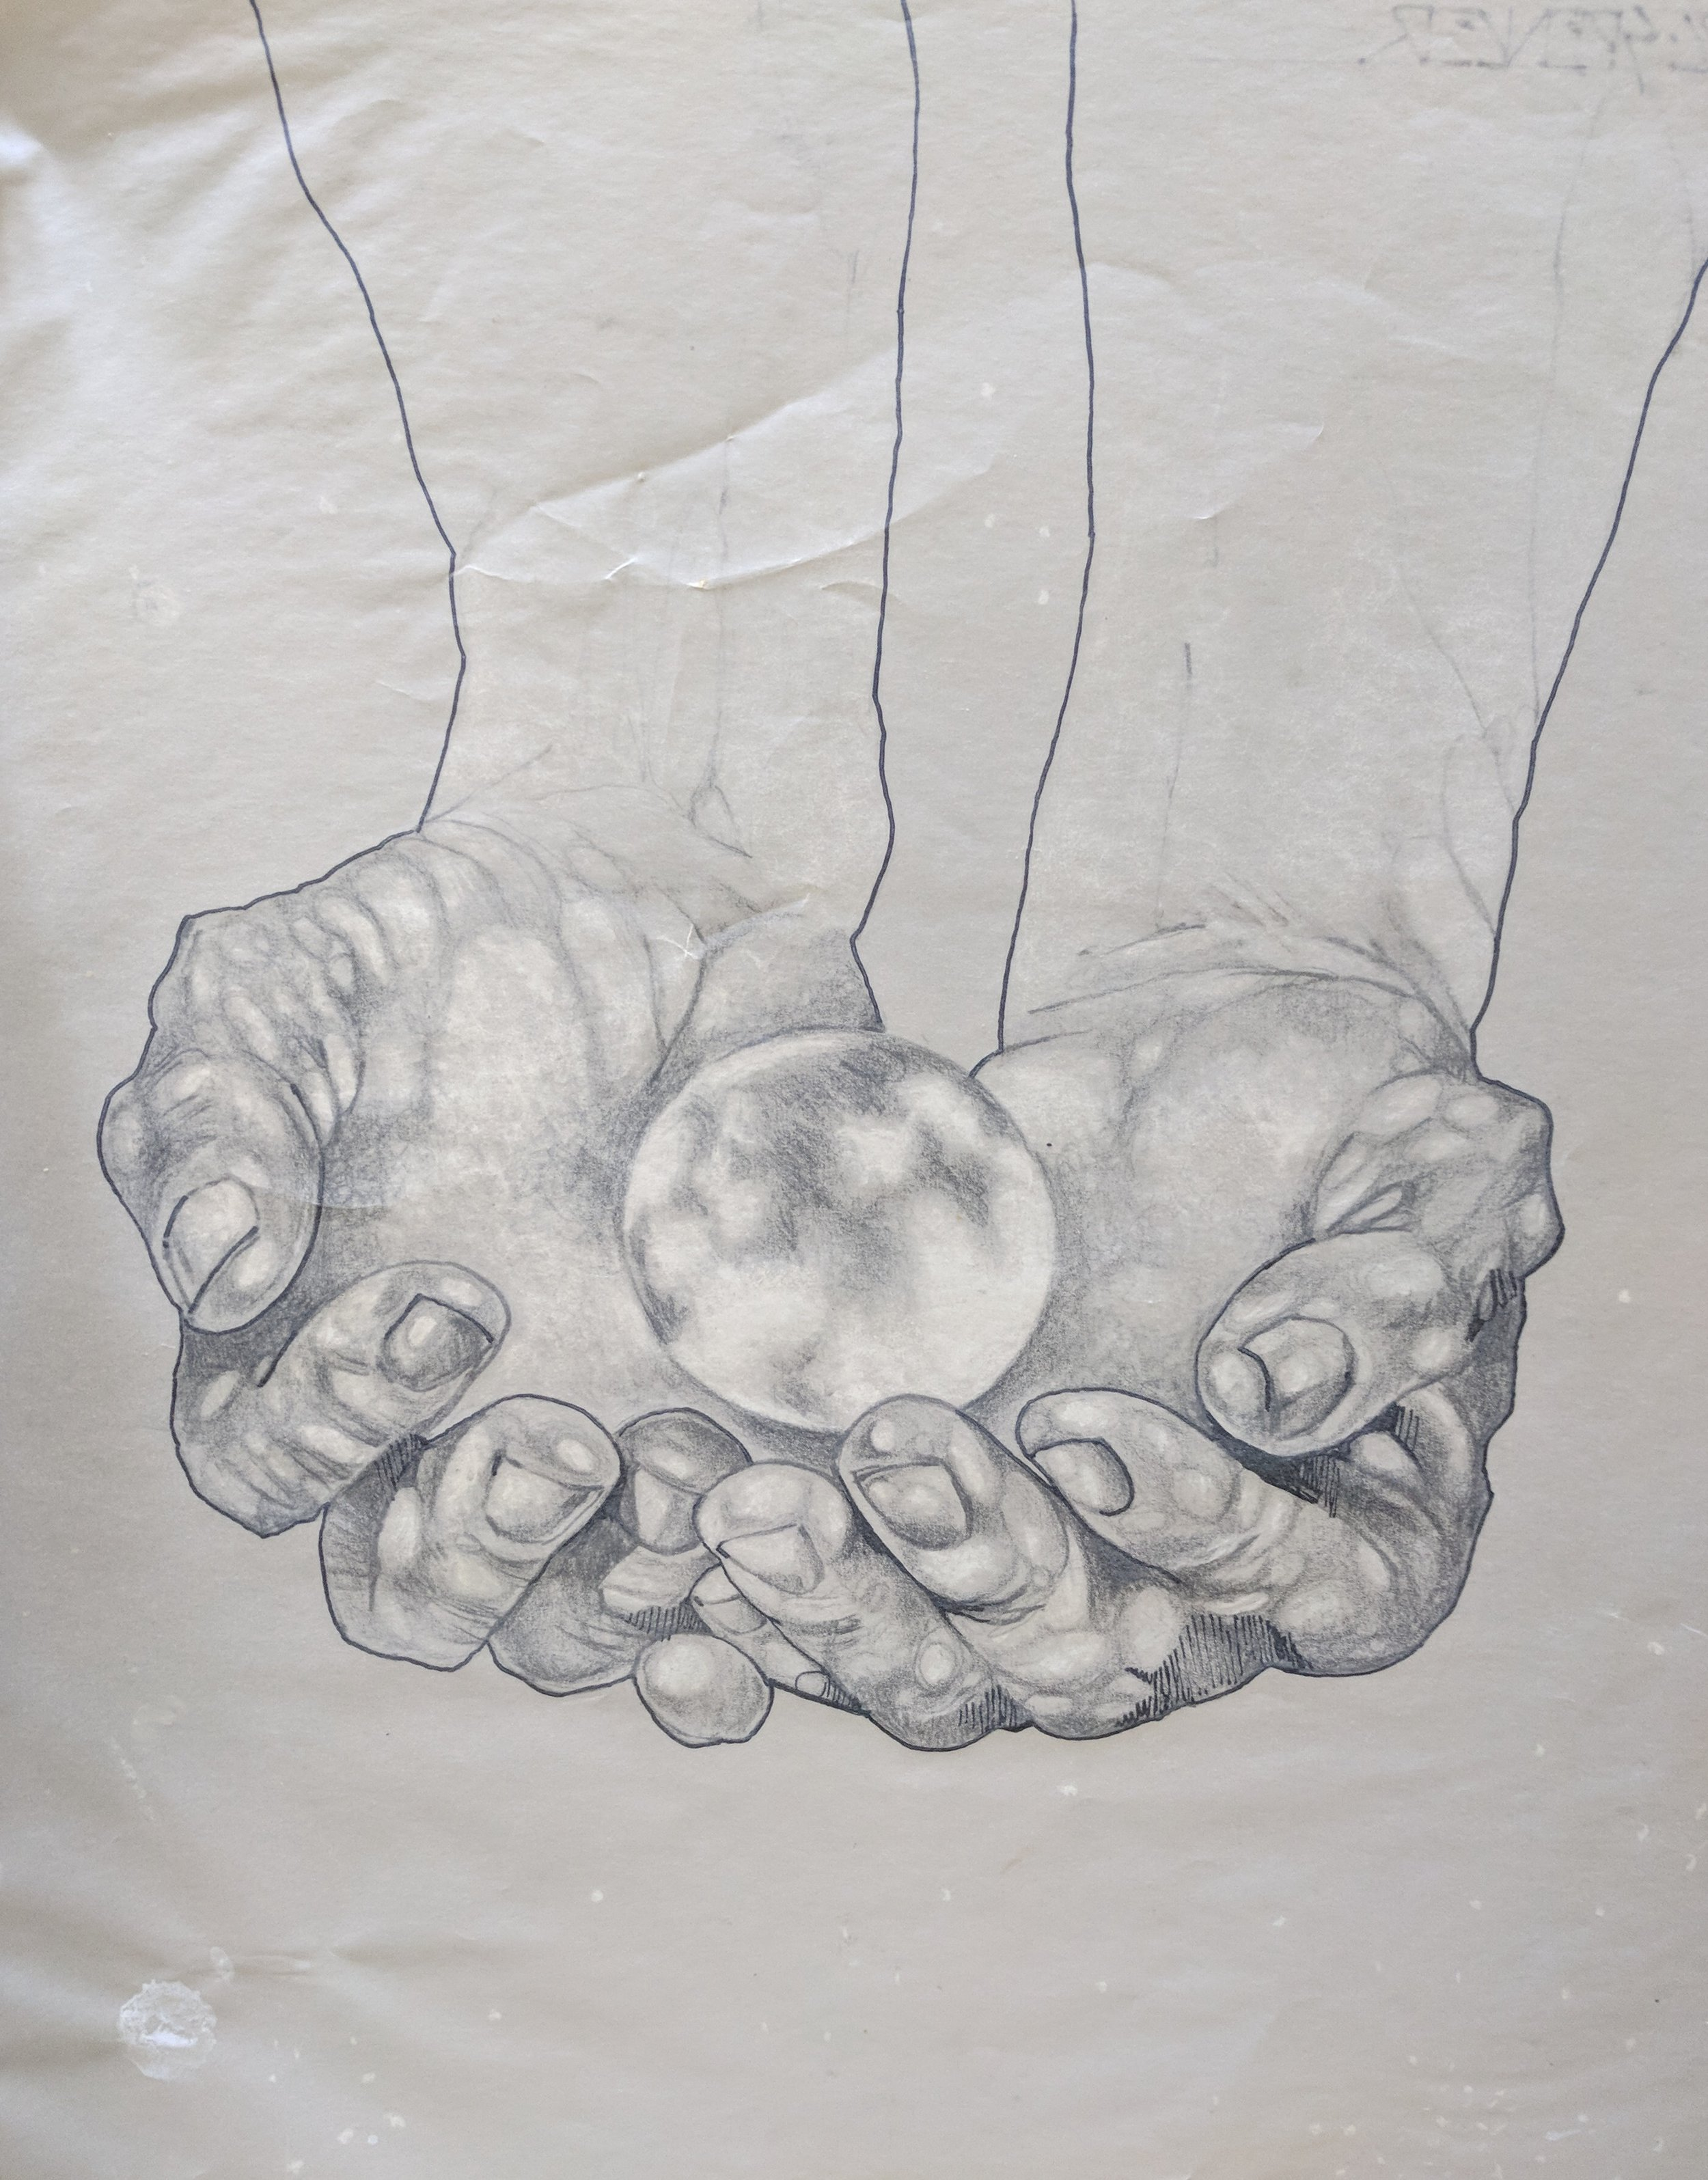 In His Hands. - Graphite and white pencil on transfer paper.Peter C. Spencer original hand-drawn illustration. Biblical imagery. Property of Peter C. Spencer (c).